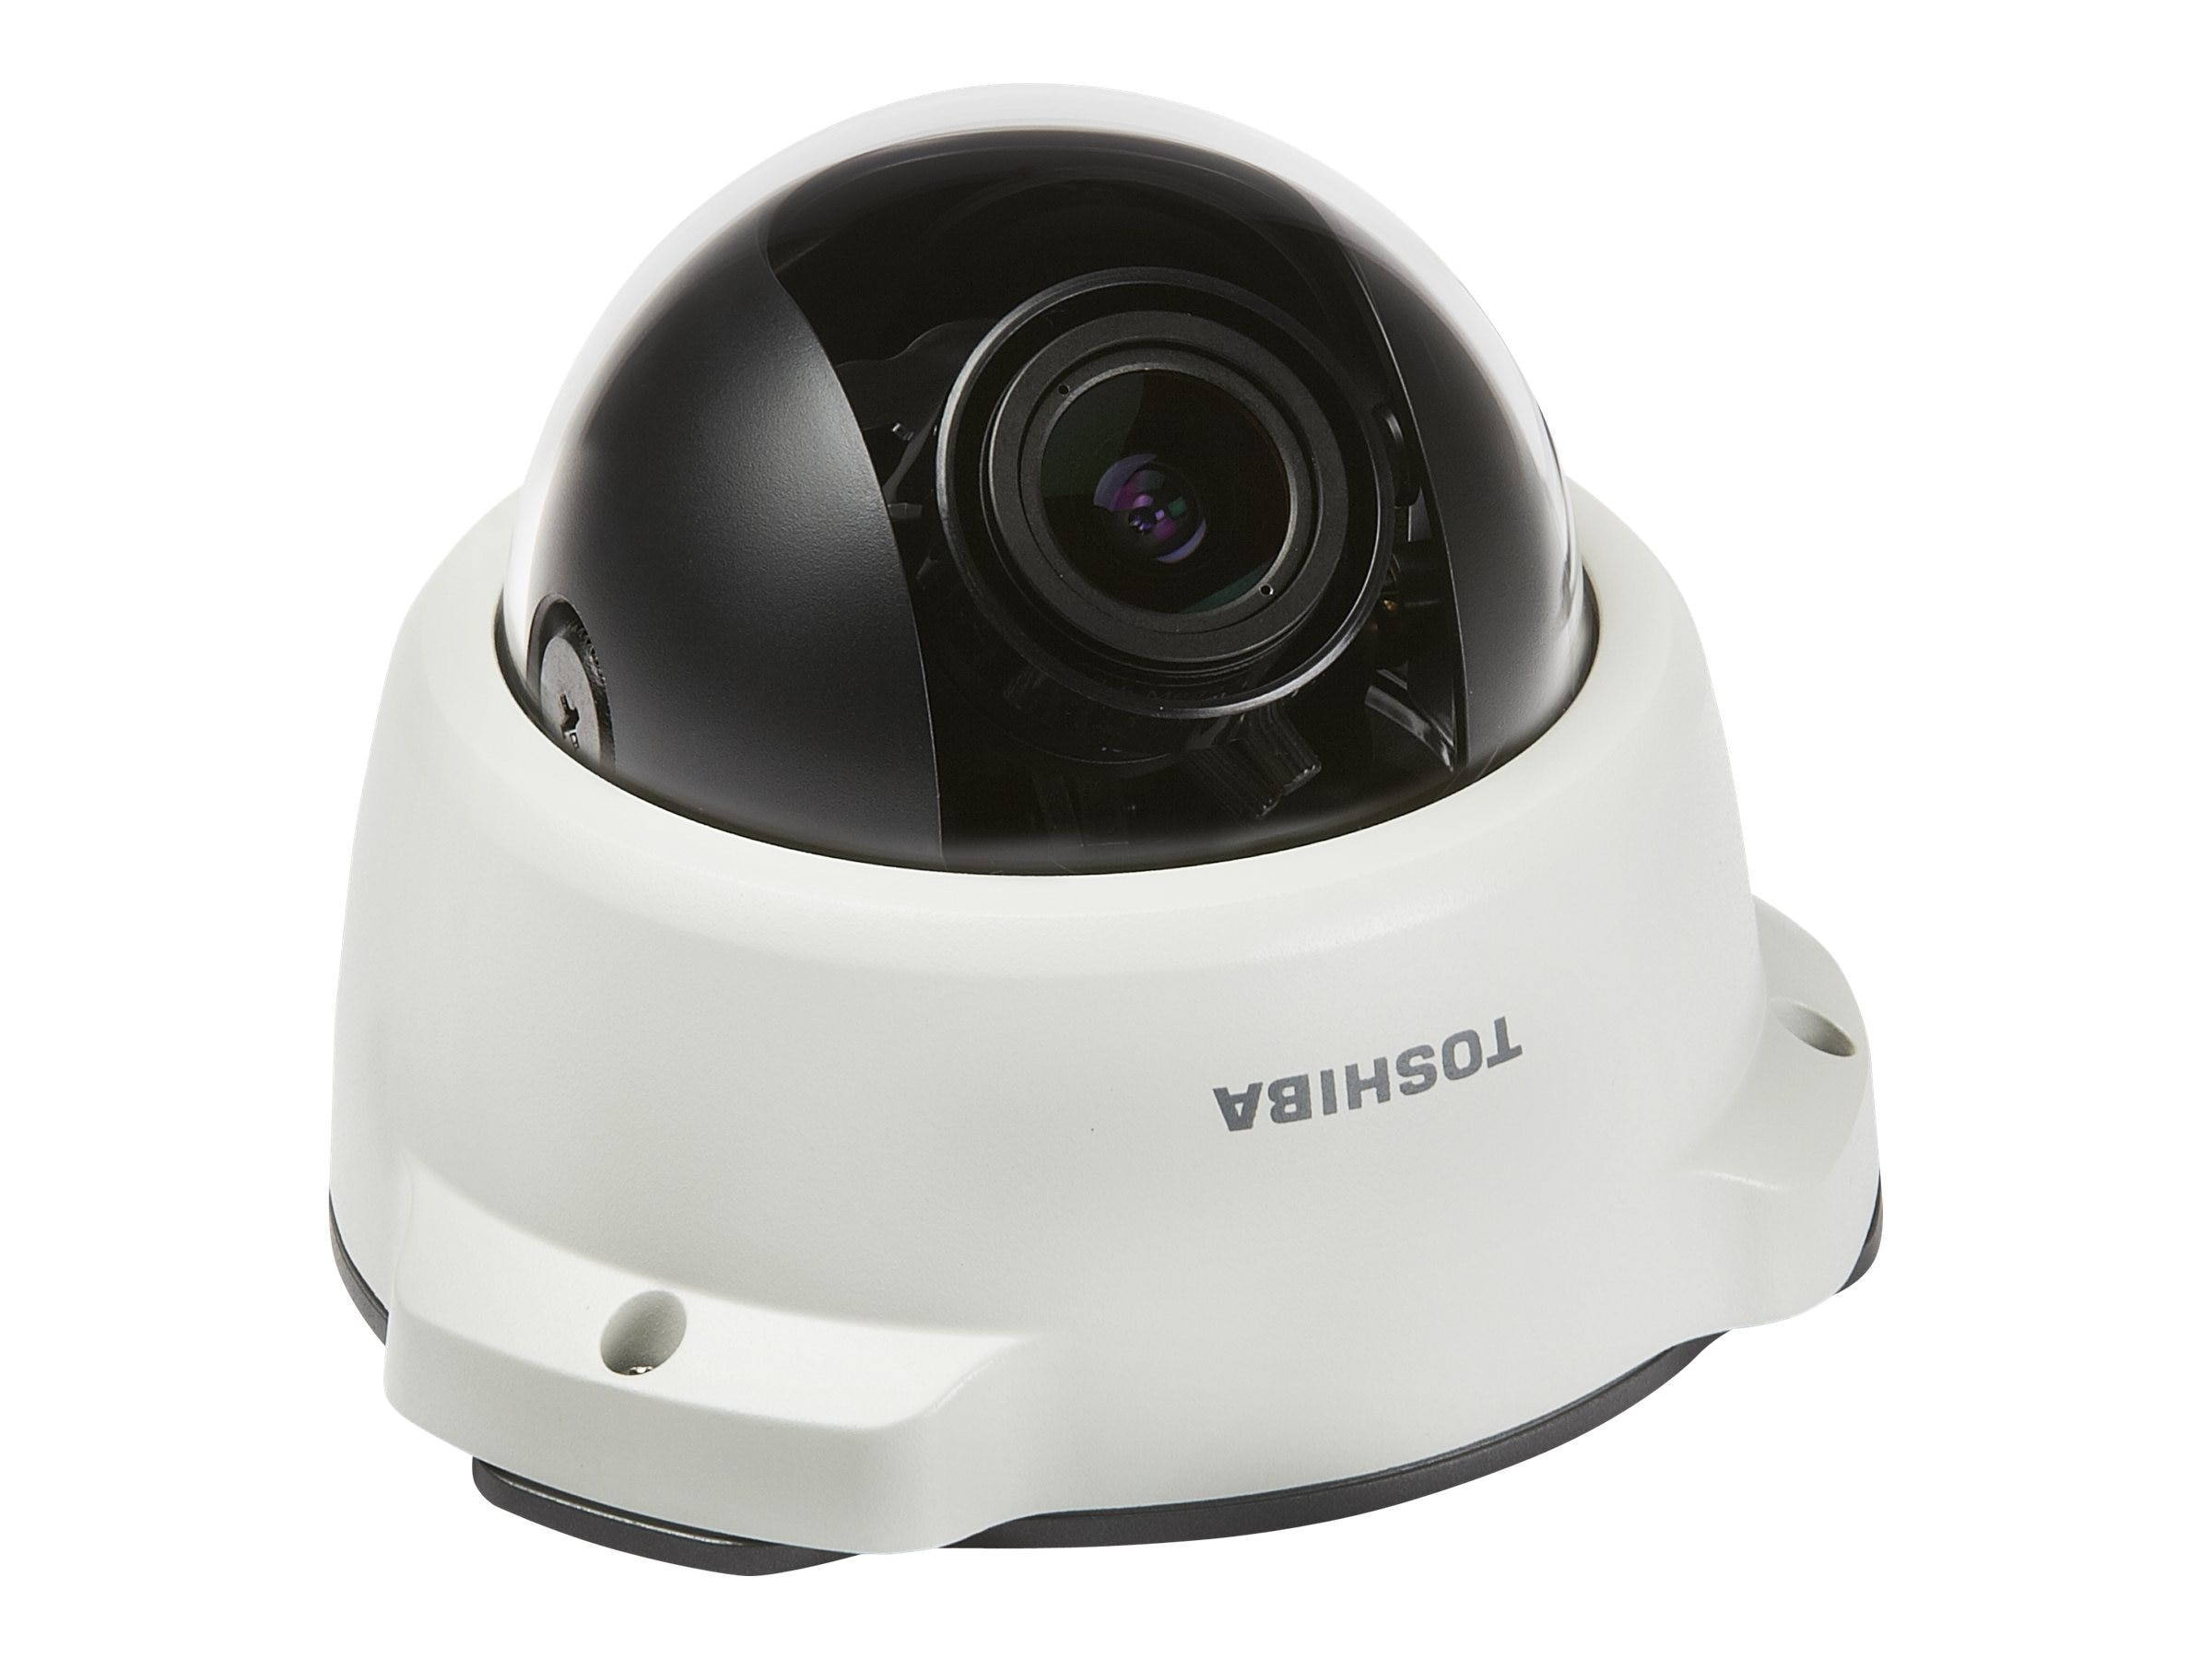 Toshiba IP66 Mini-Dome Vandal-Proof Netowrk Camera, 3-12mm, IK-WR04A